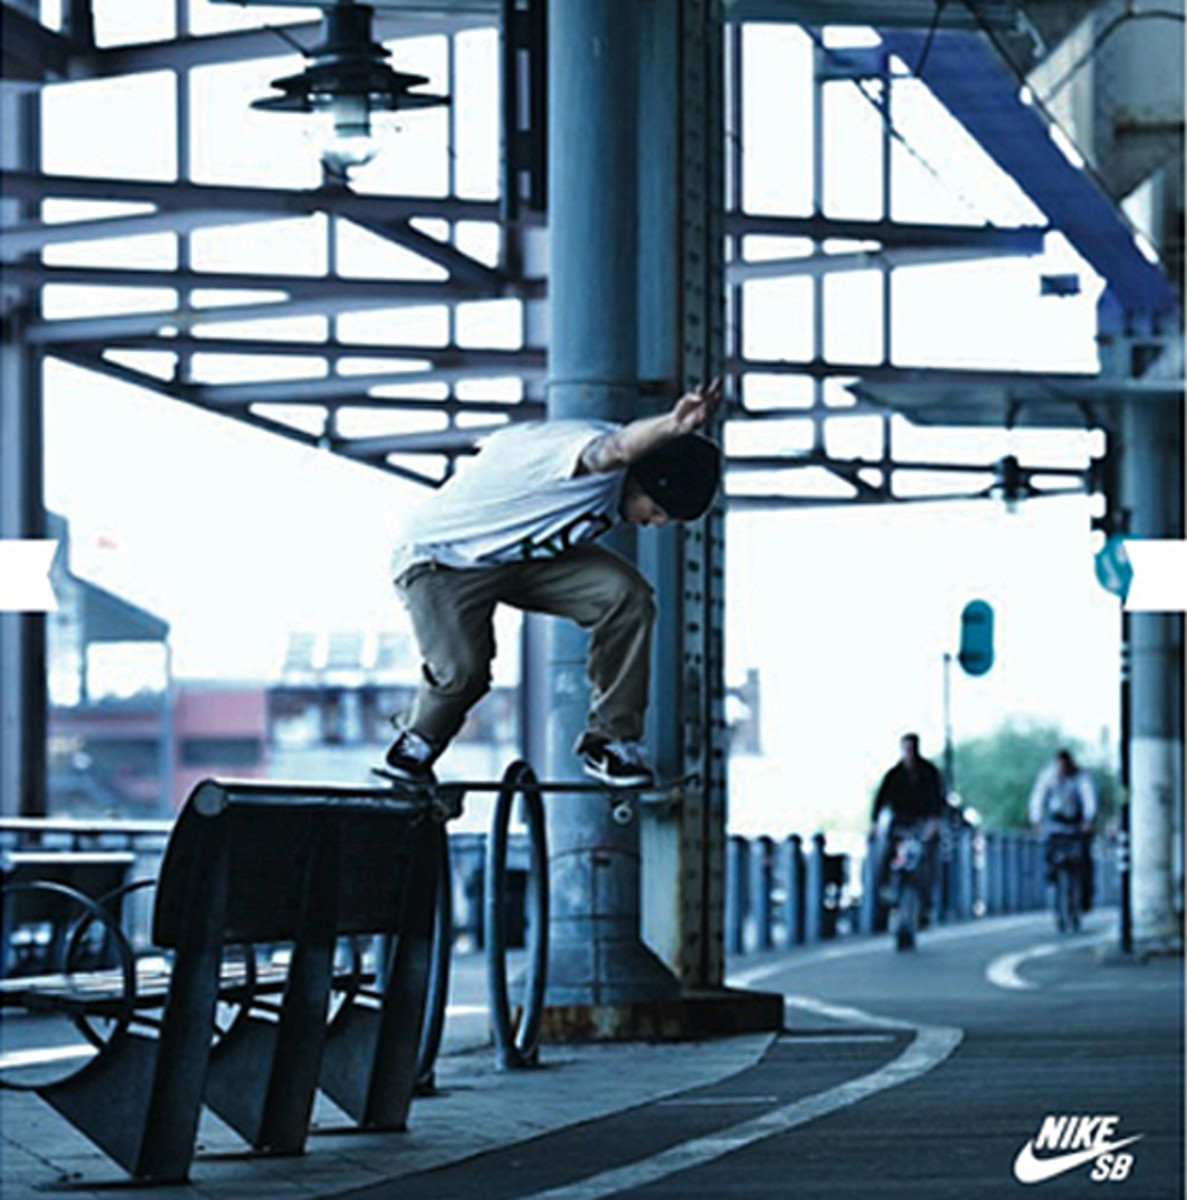 nike-sb-paul-rod-ruckers-park-01